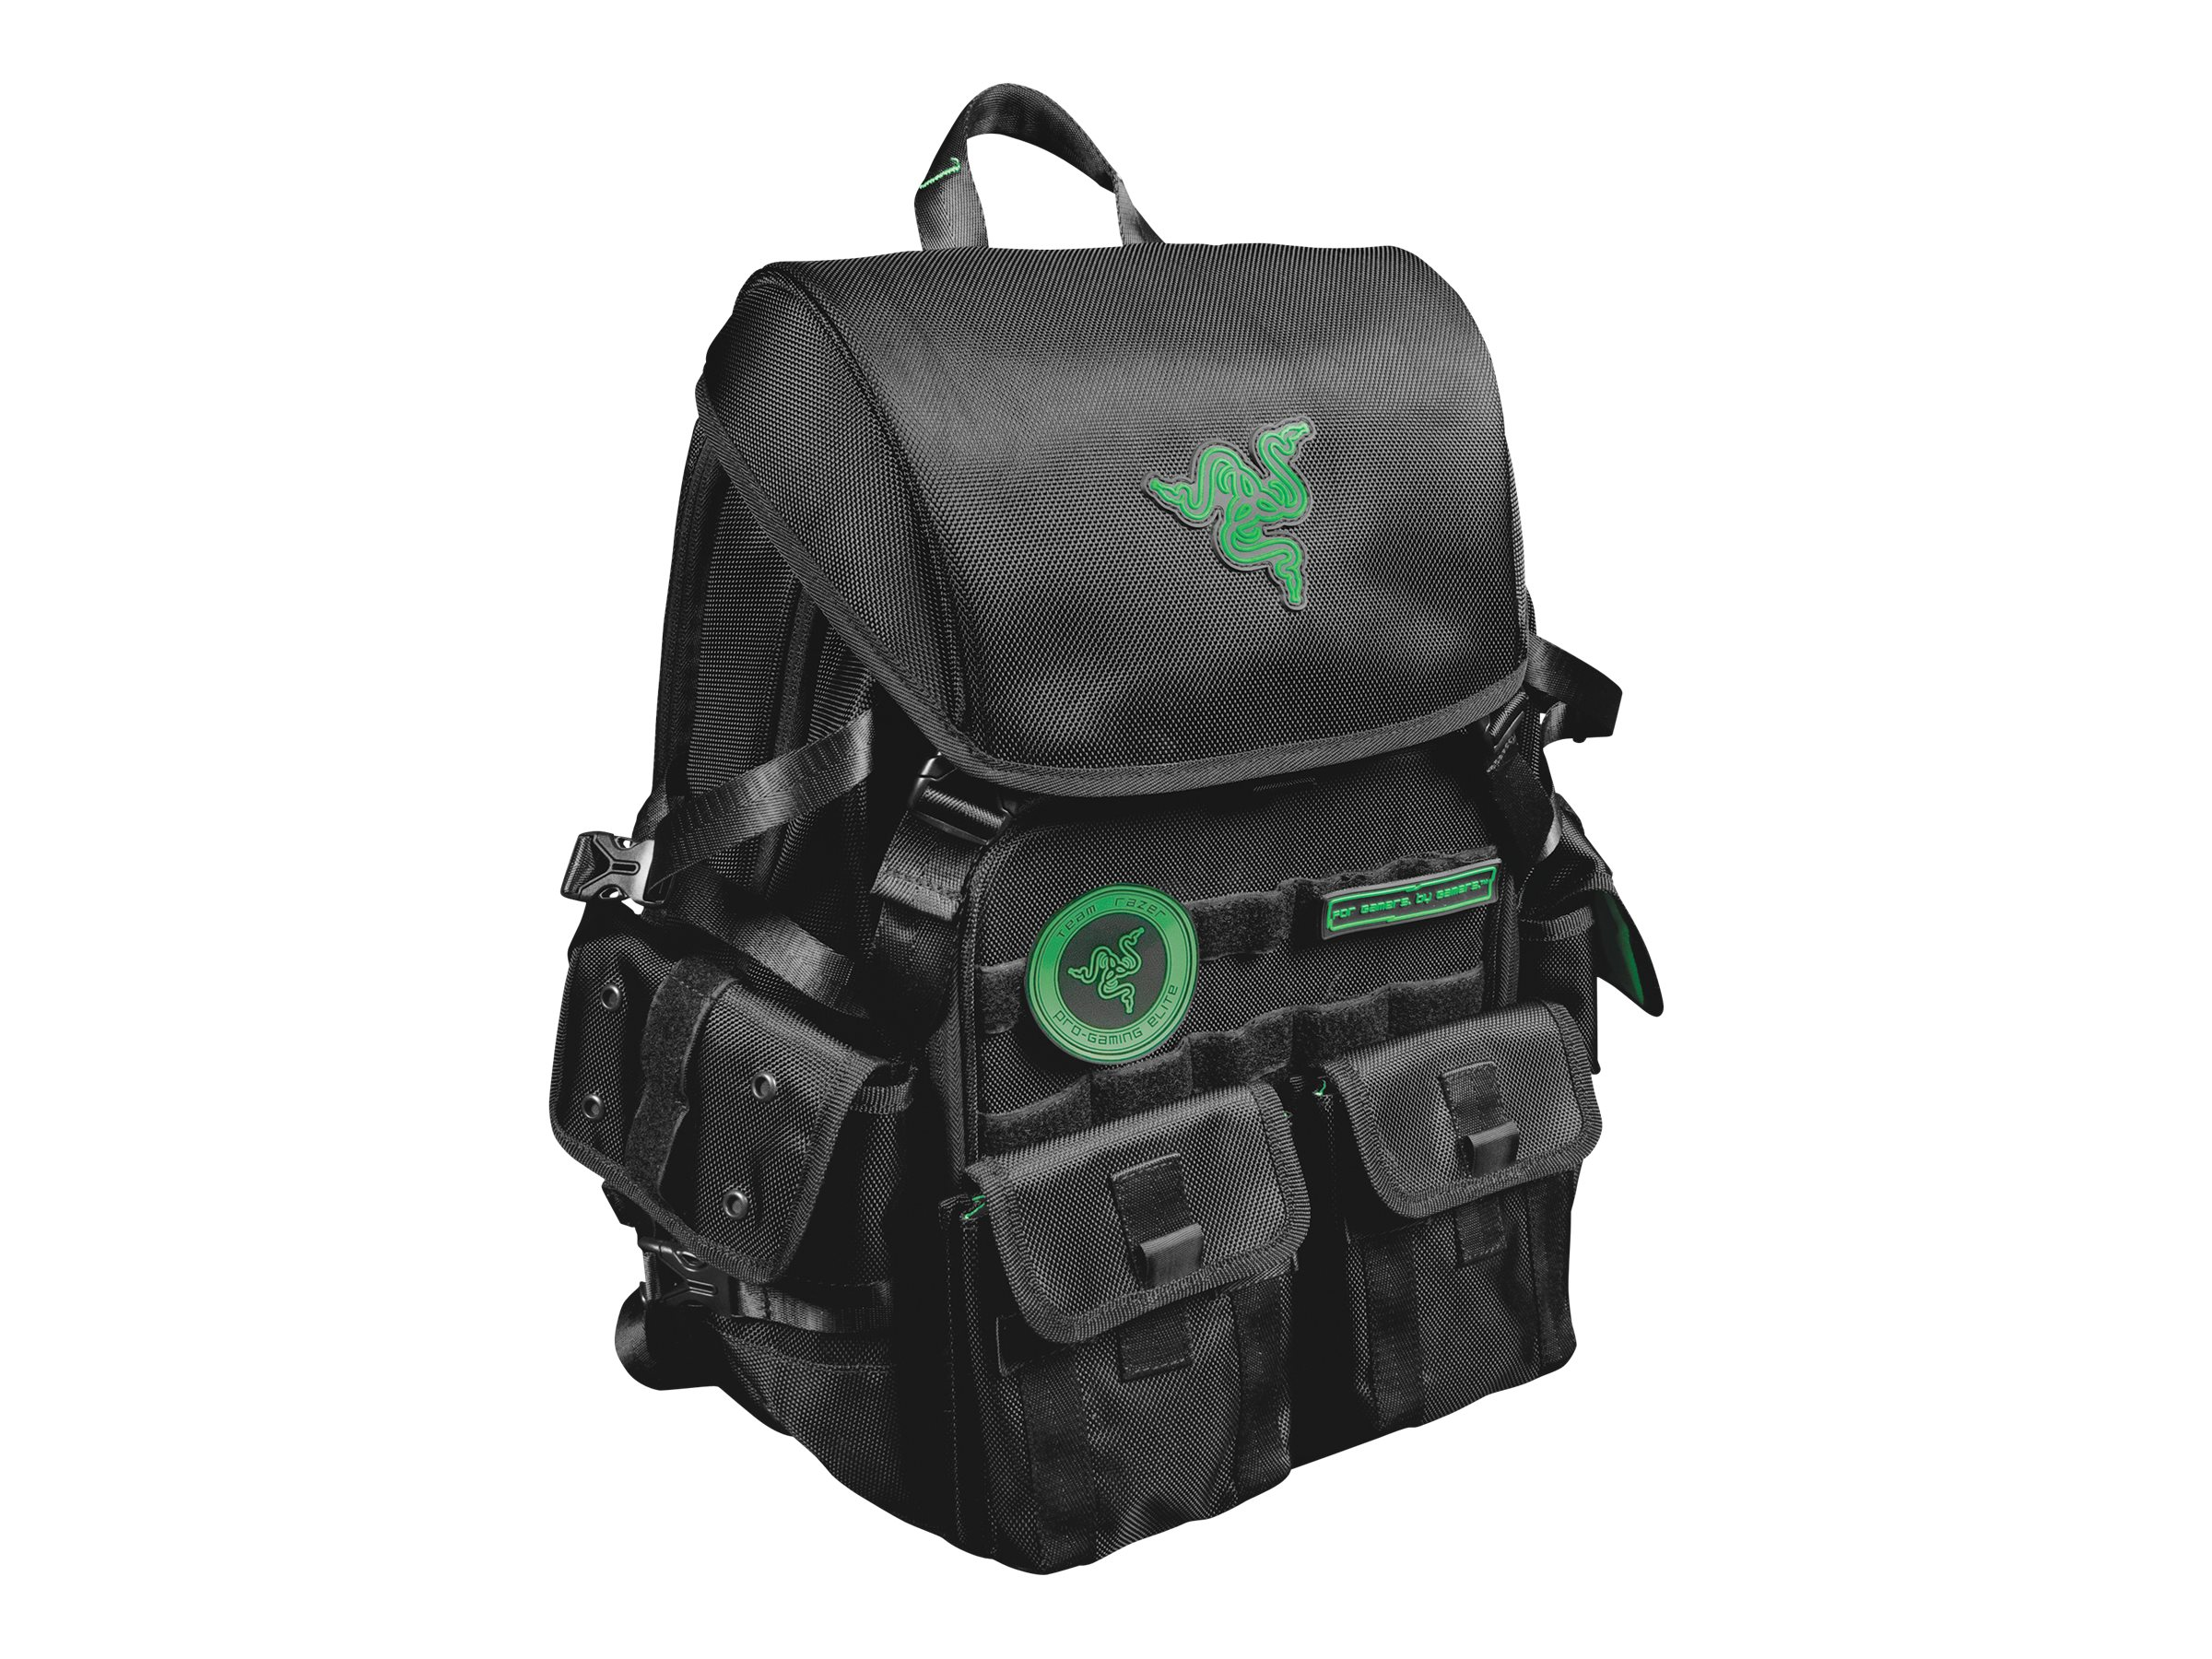 Mobile Edge Razer 17.3 Tactical Backpack, Black